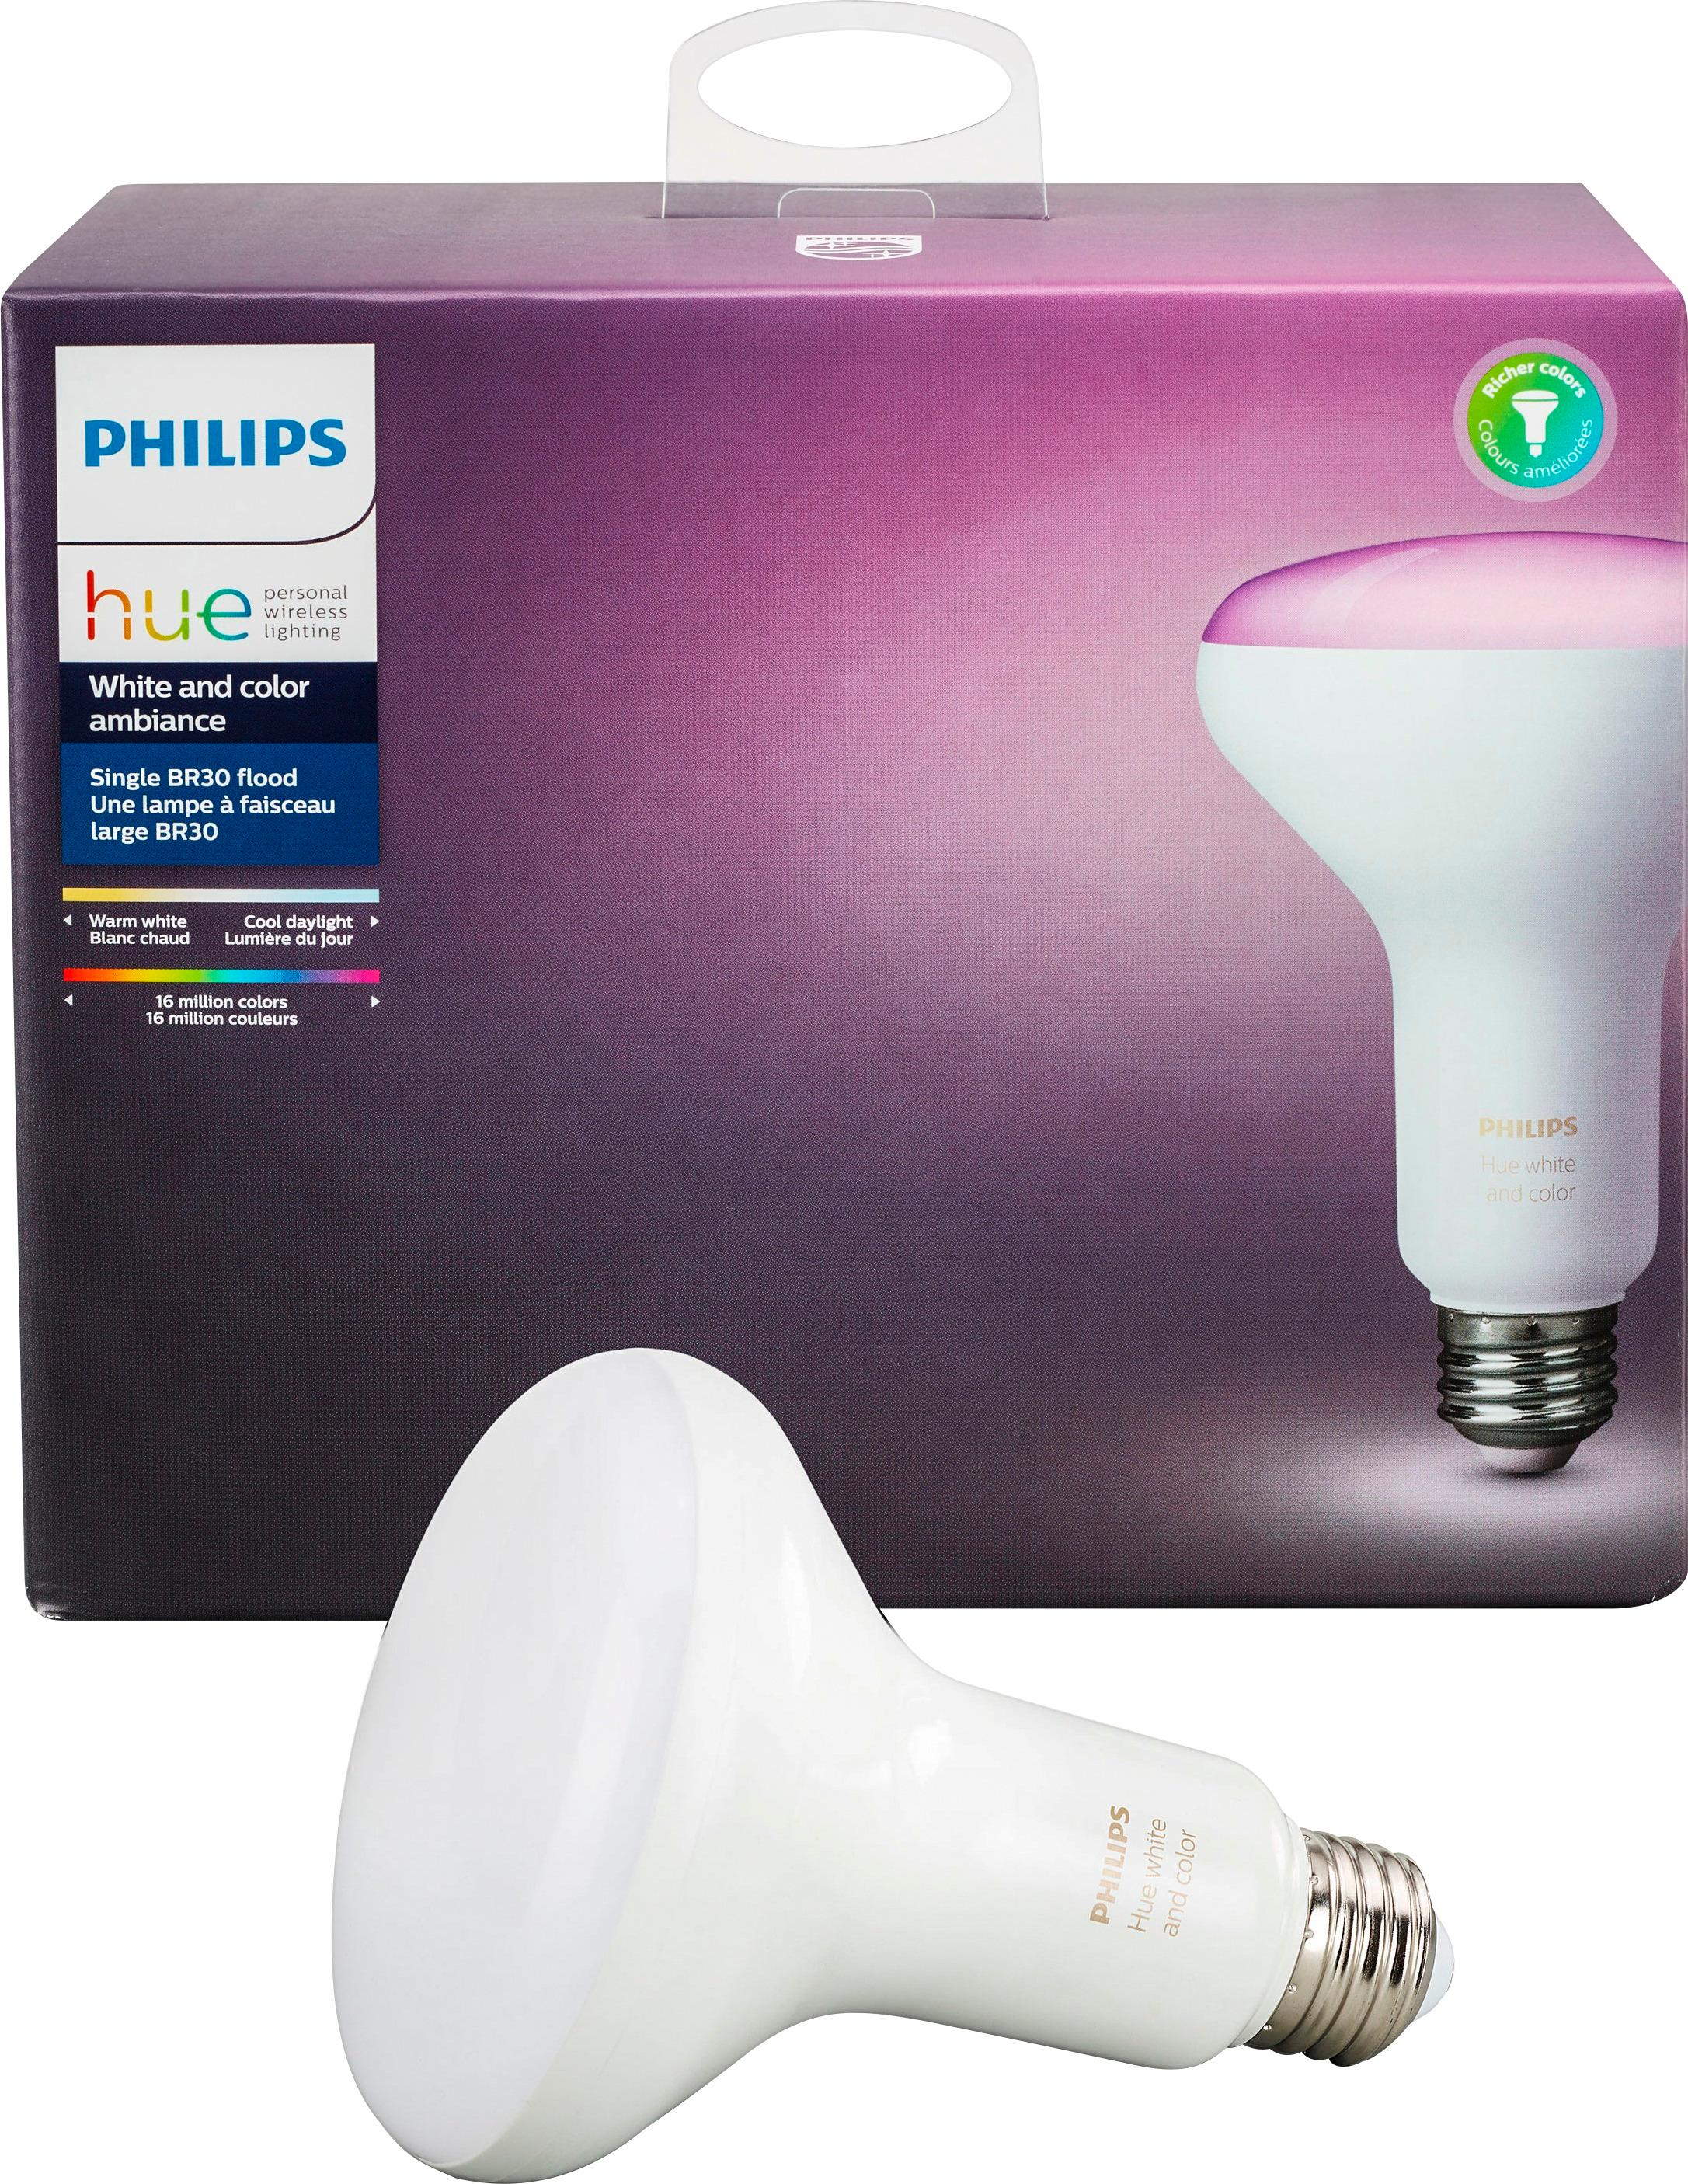 Bulb Philips Philips Hue White And Color Ambiance Br30 Wi Fi Smart Led Floodlight Bulb Multicolor